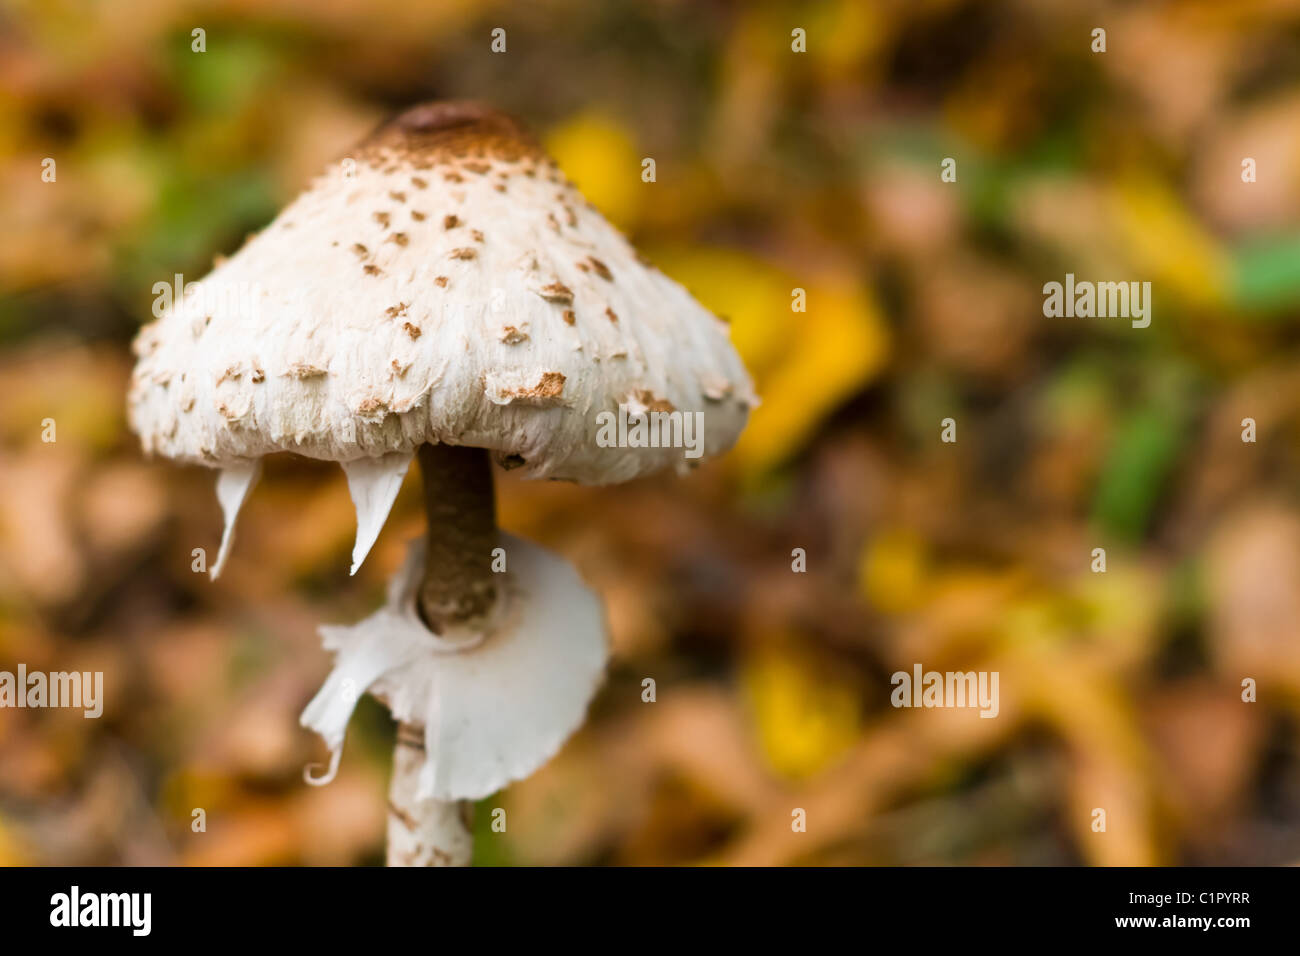 forest mushroom in moss after big longtime rain - Stock Image